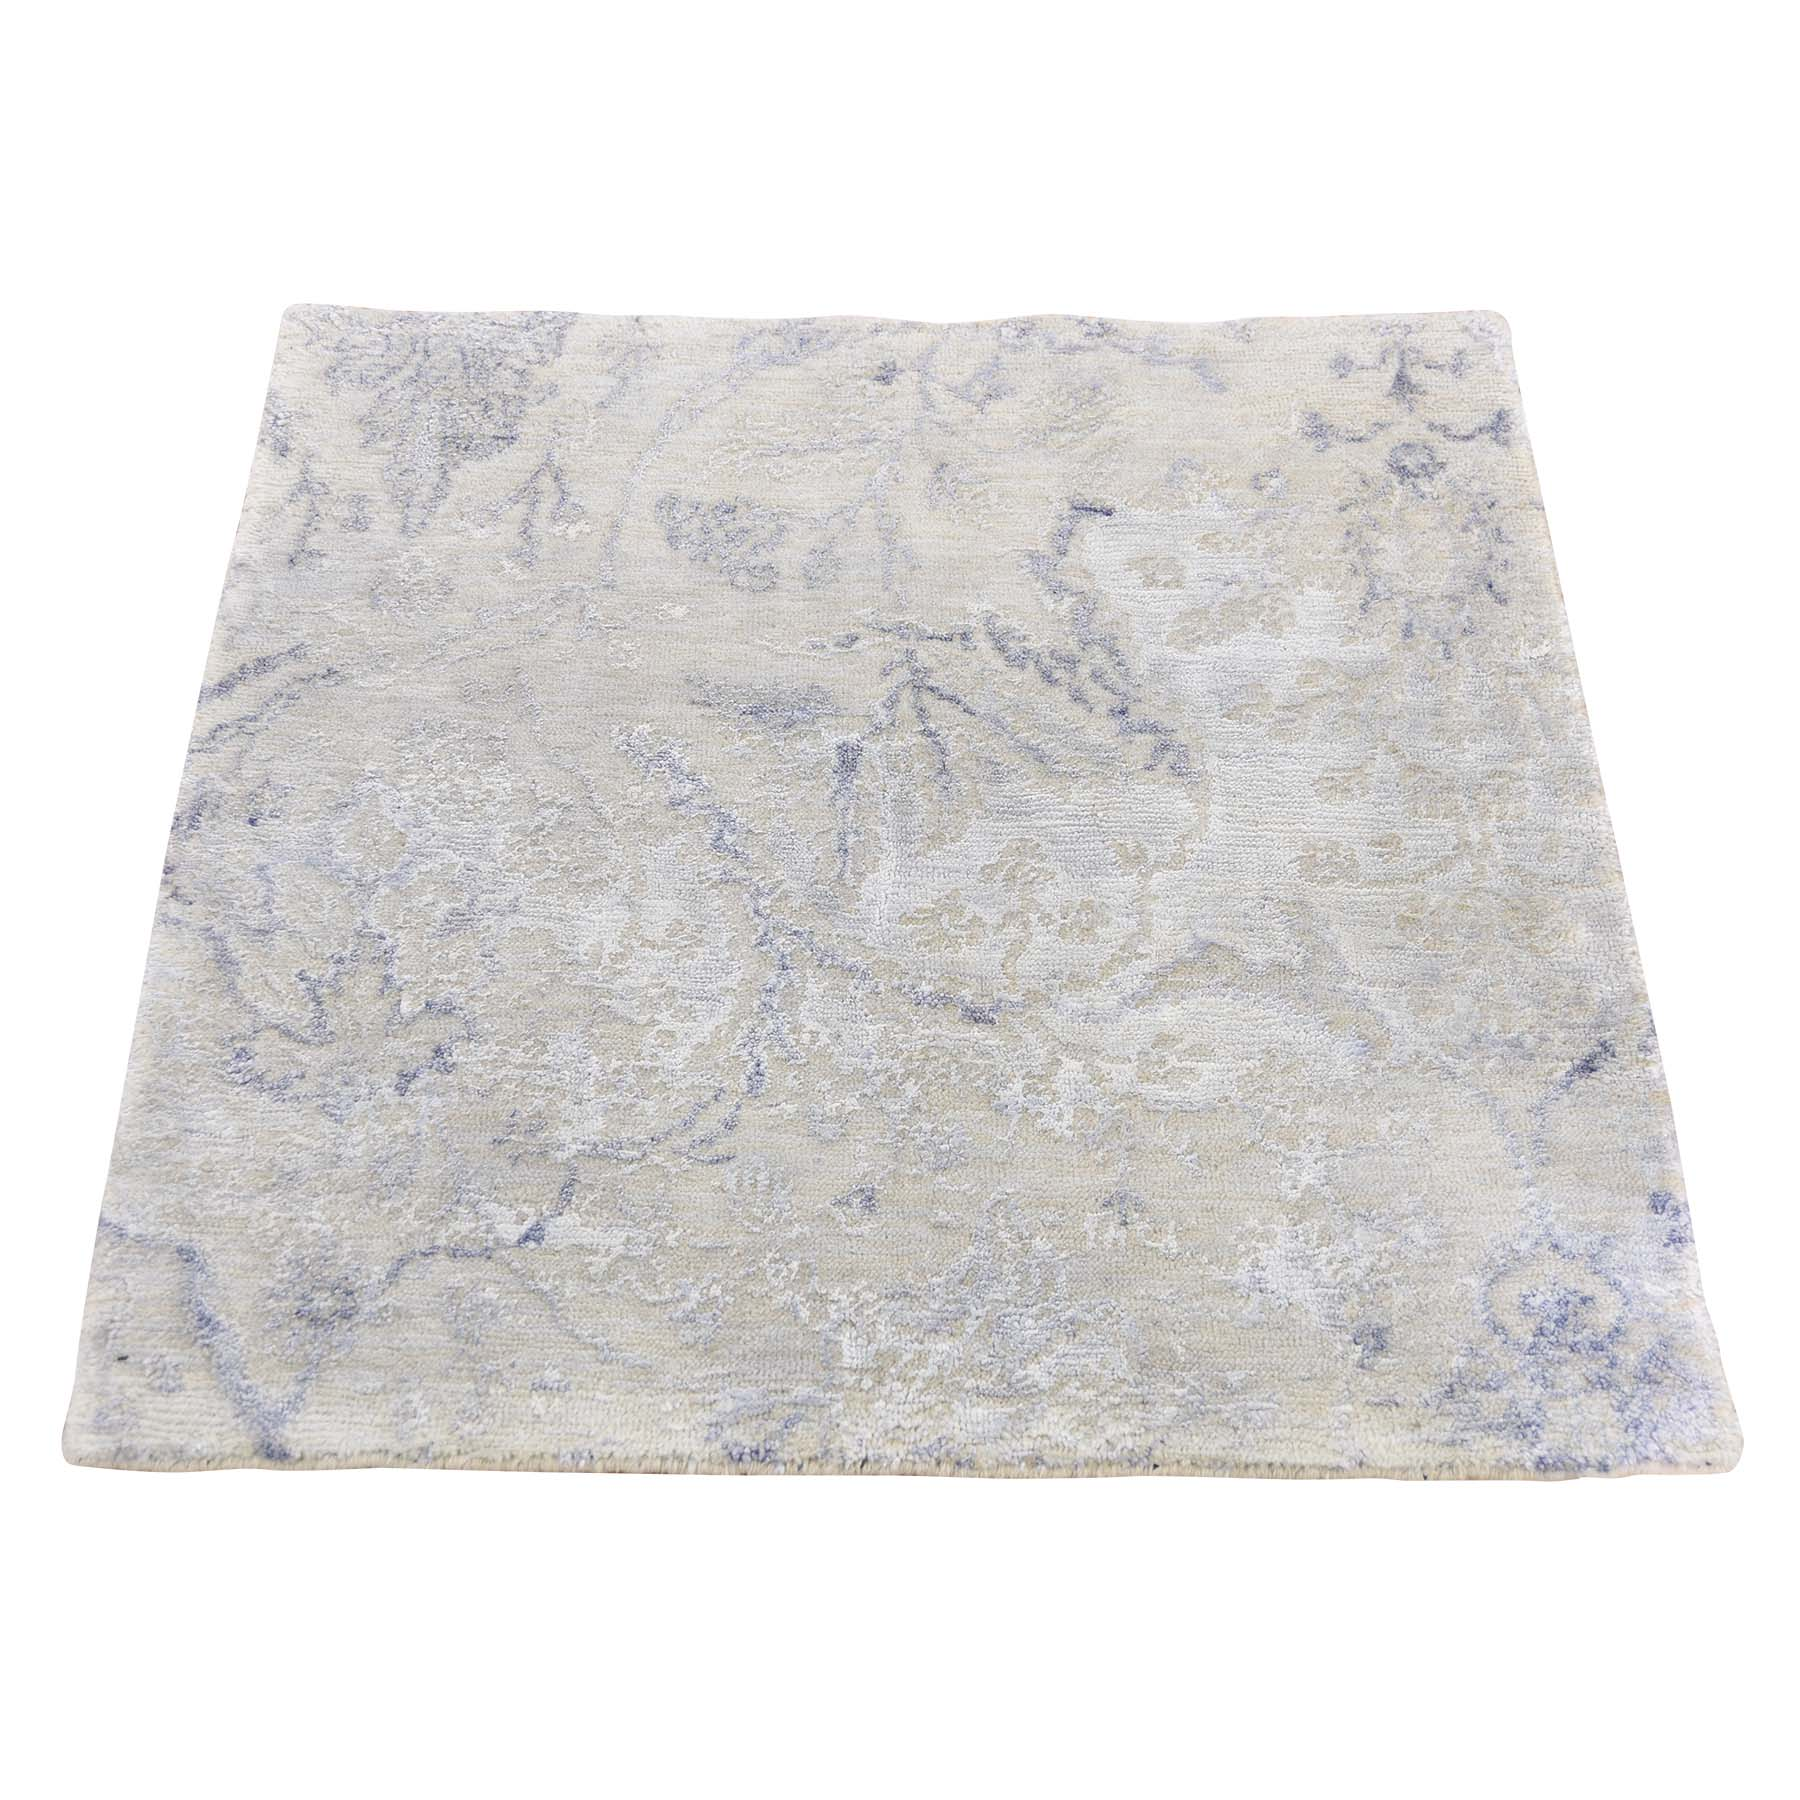 Mid Century Modern Collection Hand Knotted Grey Rug No: 187752